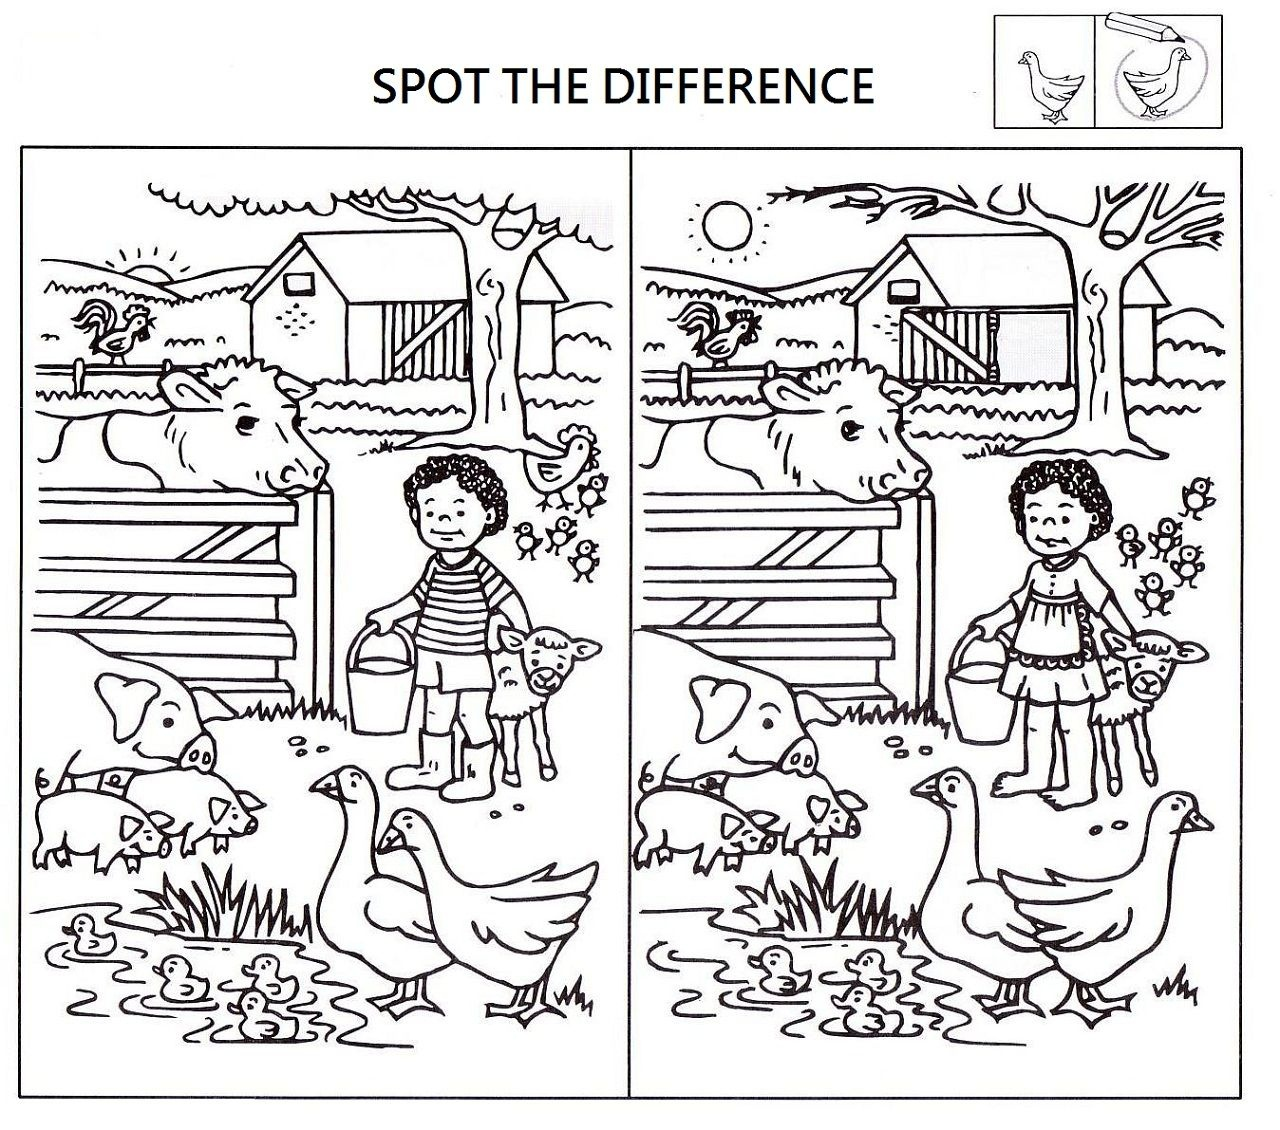 Free Printable Spot The Difference Games For Adults